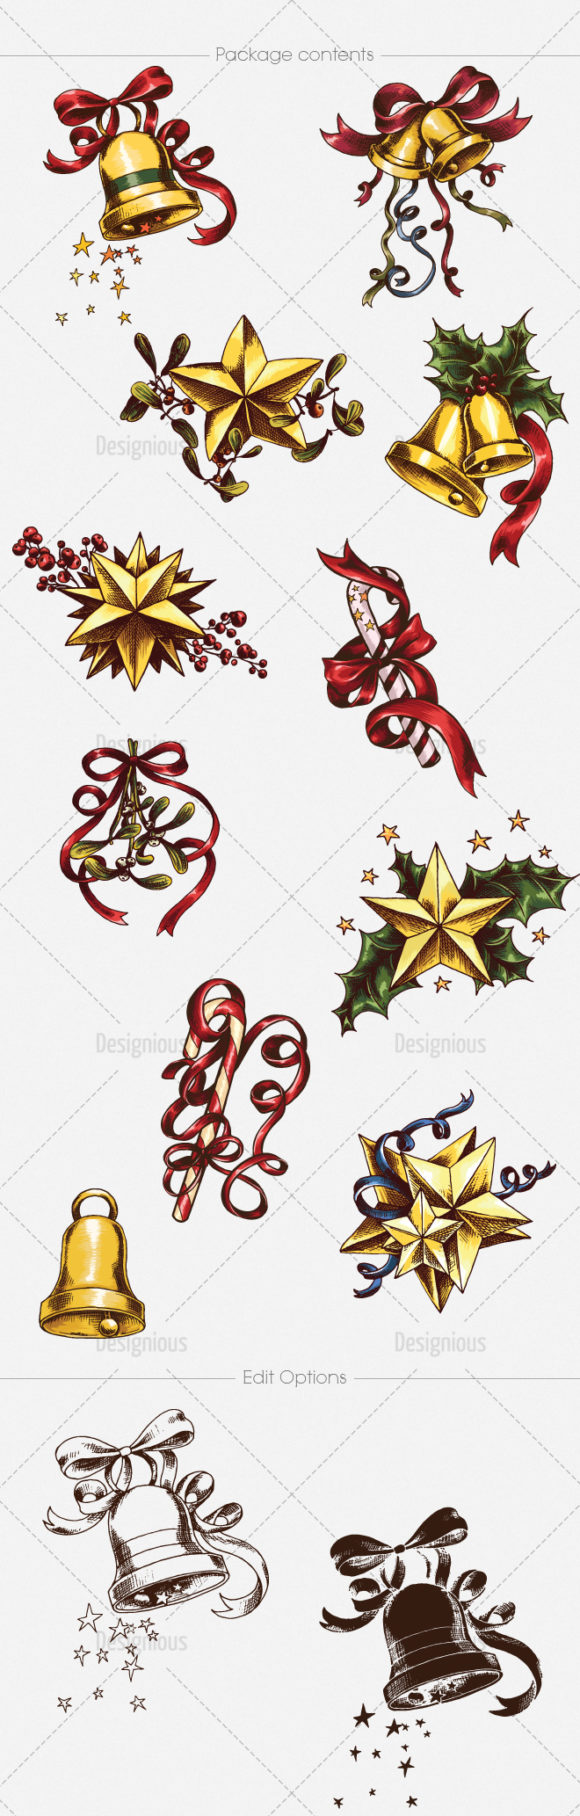 Christmas Vector Pack 17 products designious vector christmas 17 large